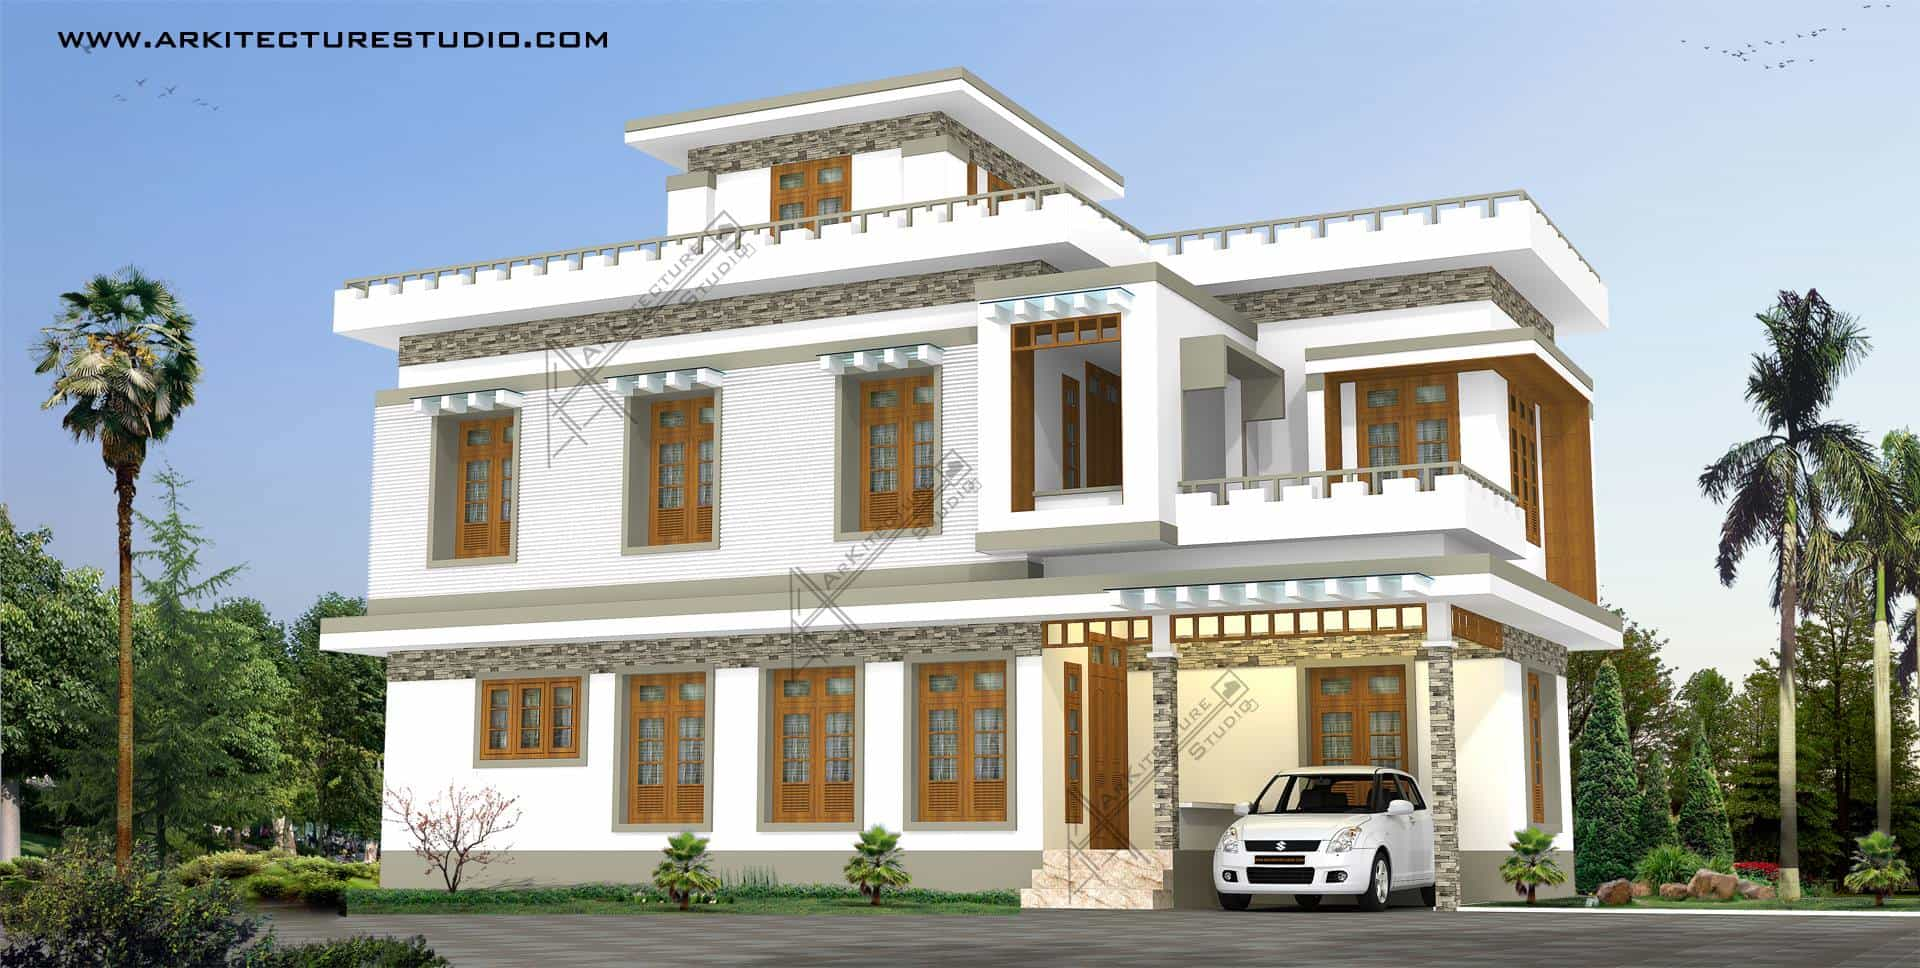 Kerala Home Design House Plans Indian Budget Models: new home models and plans